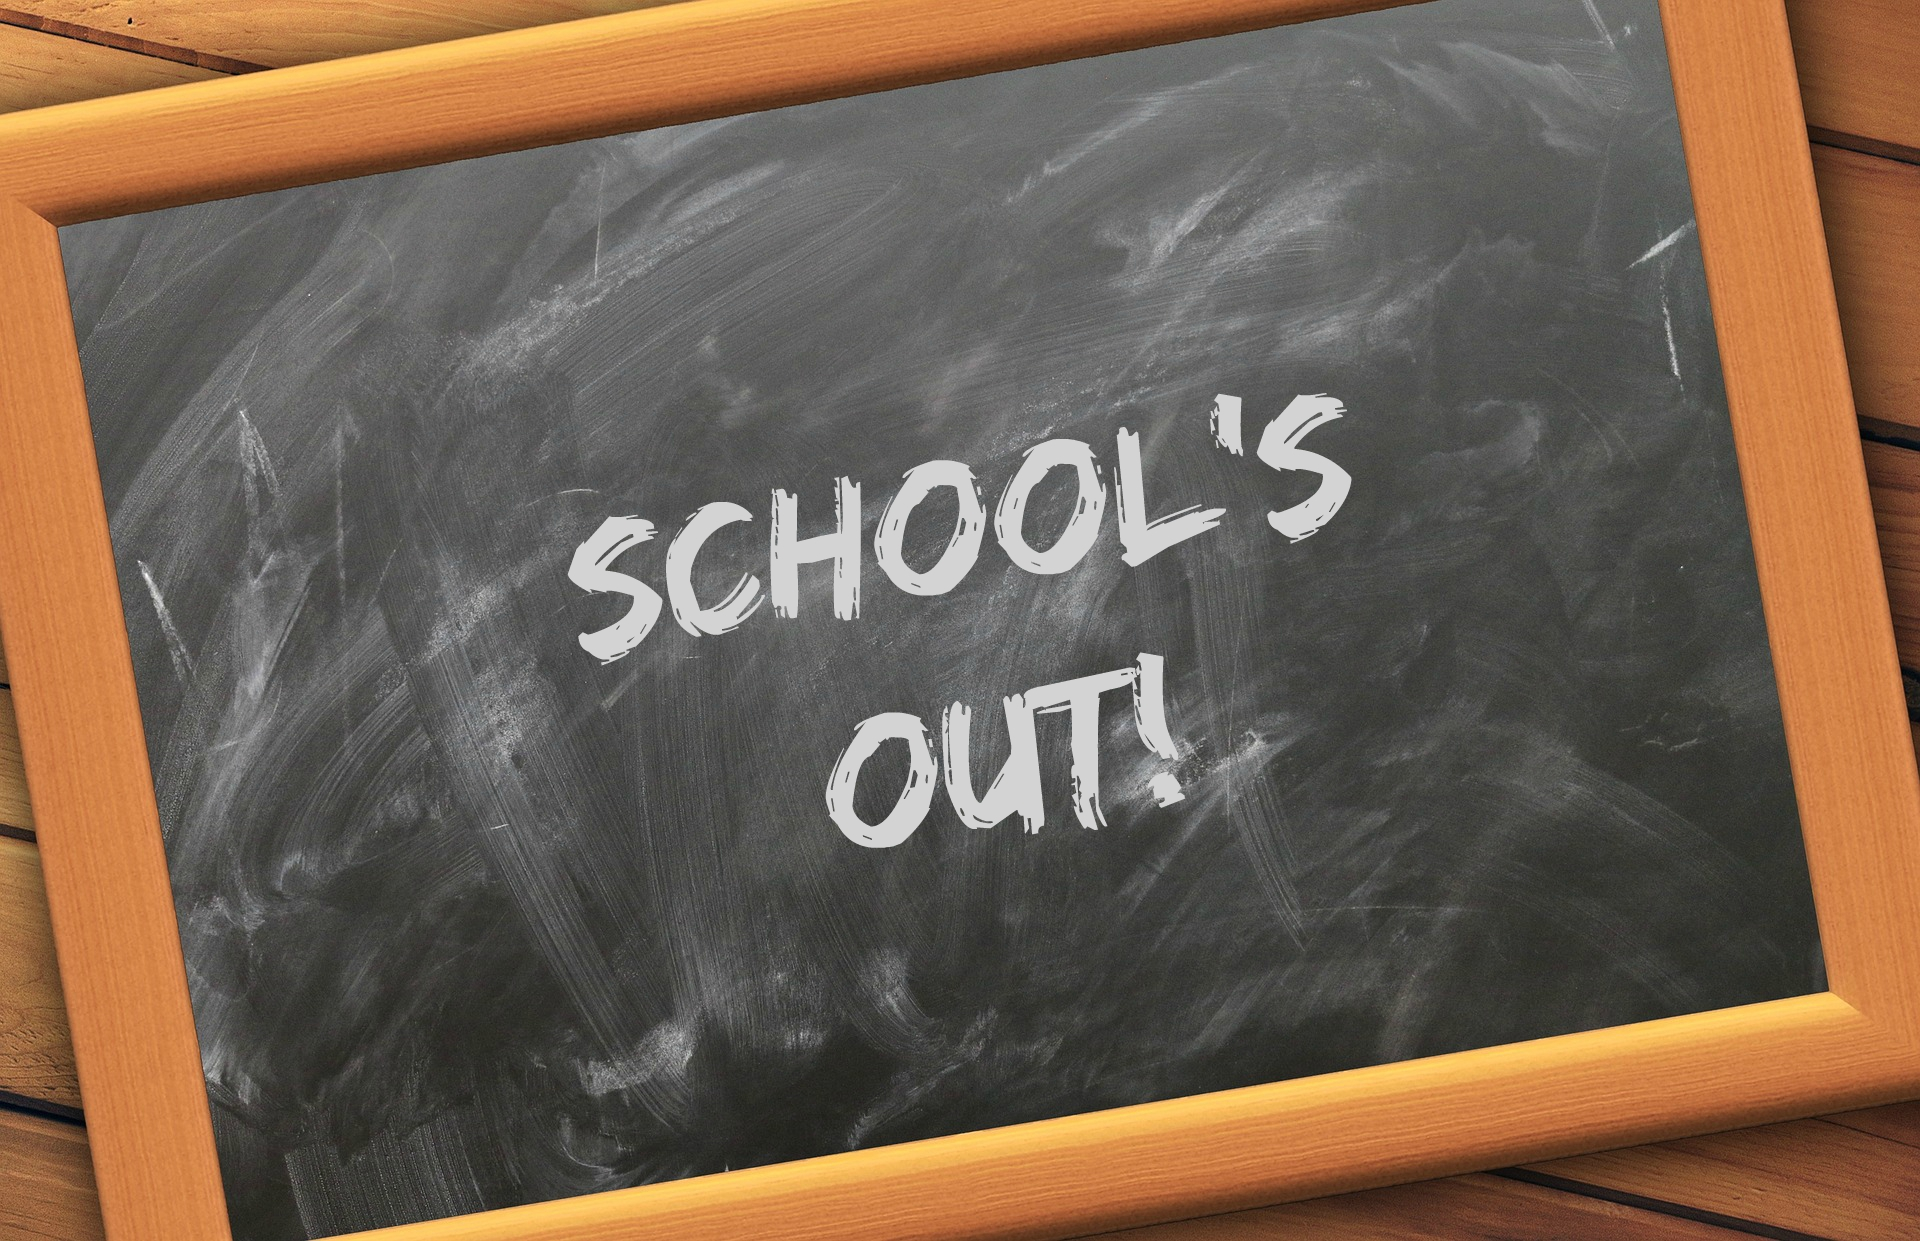 school's out message